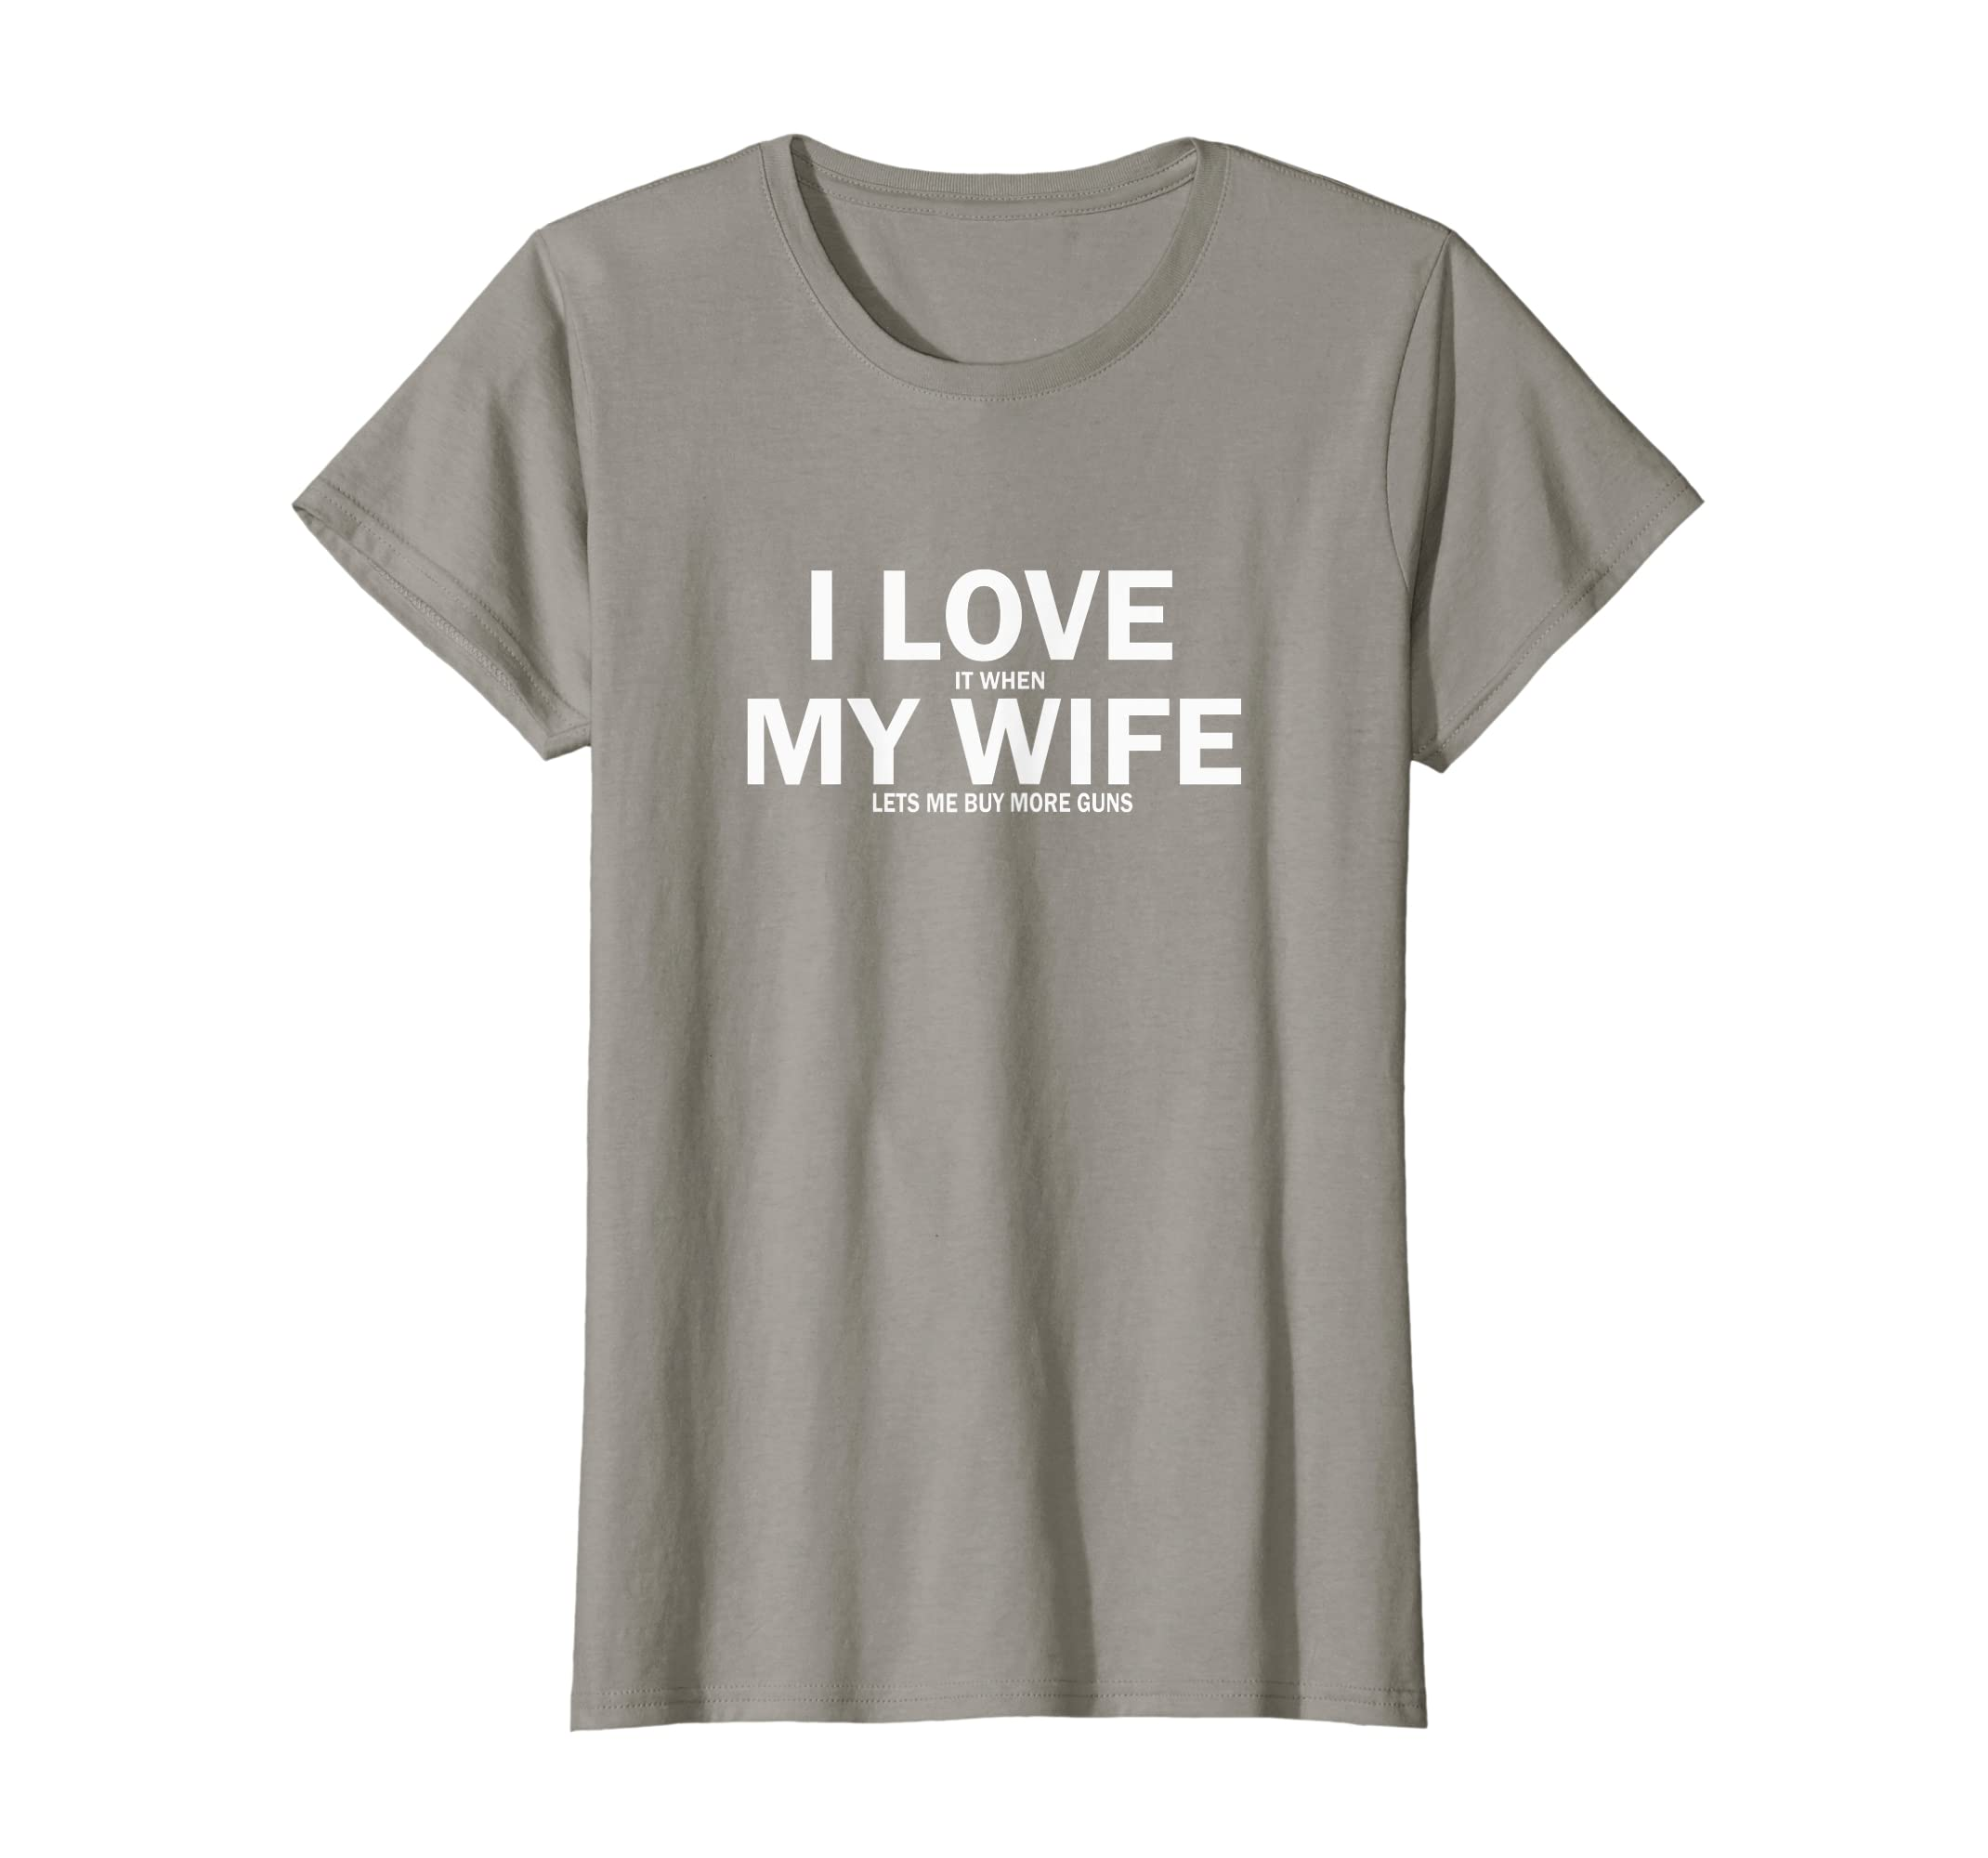 54c42b47 Amazon.com: I Love It When My Wife Lets Me Buy More Guns T-Shirt: Clothing